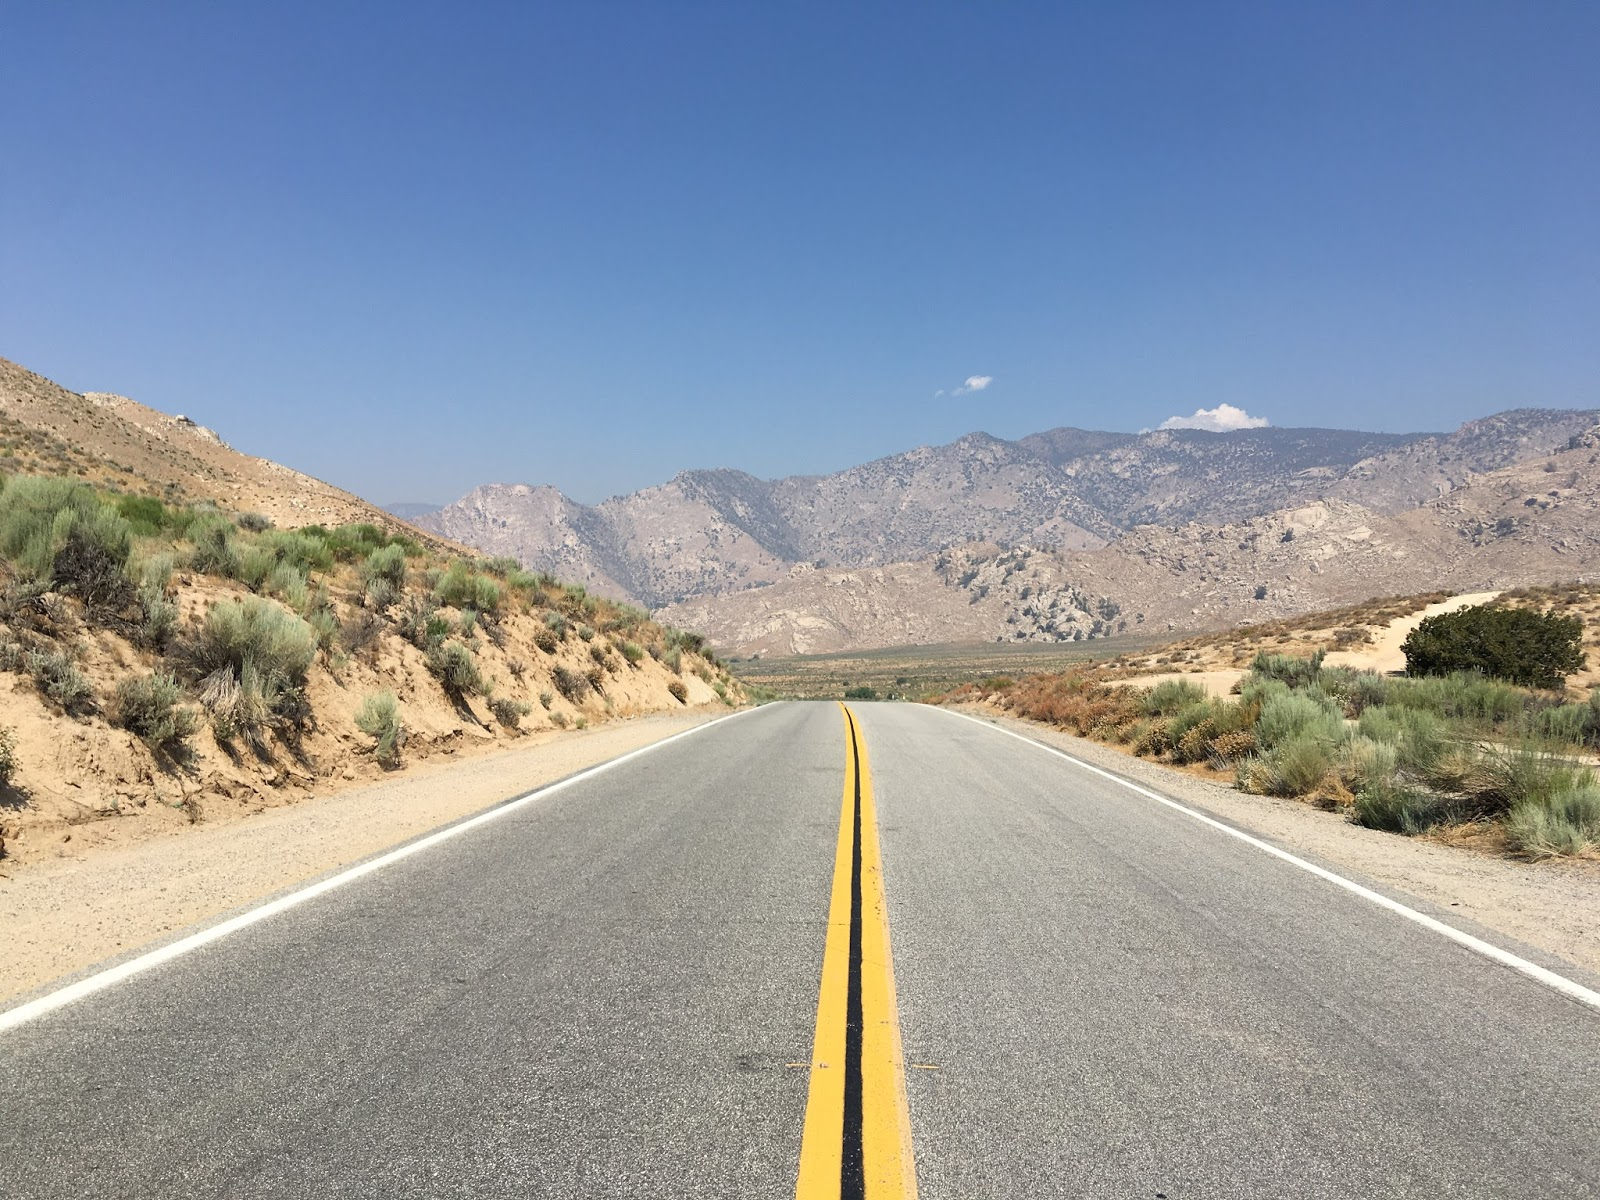 the terrain of ca 178 levels and follows north fork kern river towards lake isabella there are some really nice vista views from the shoulder and on from